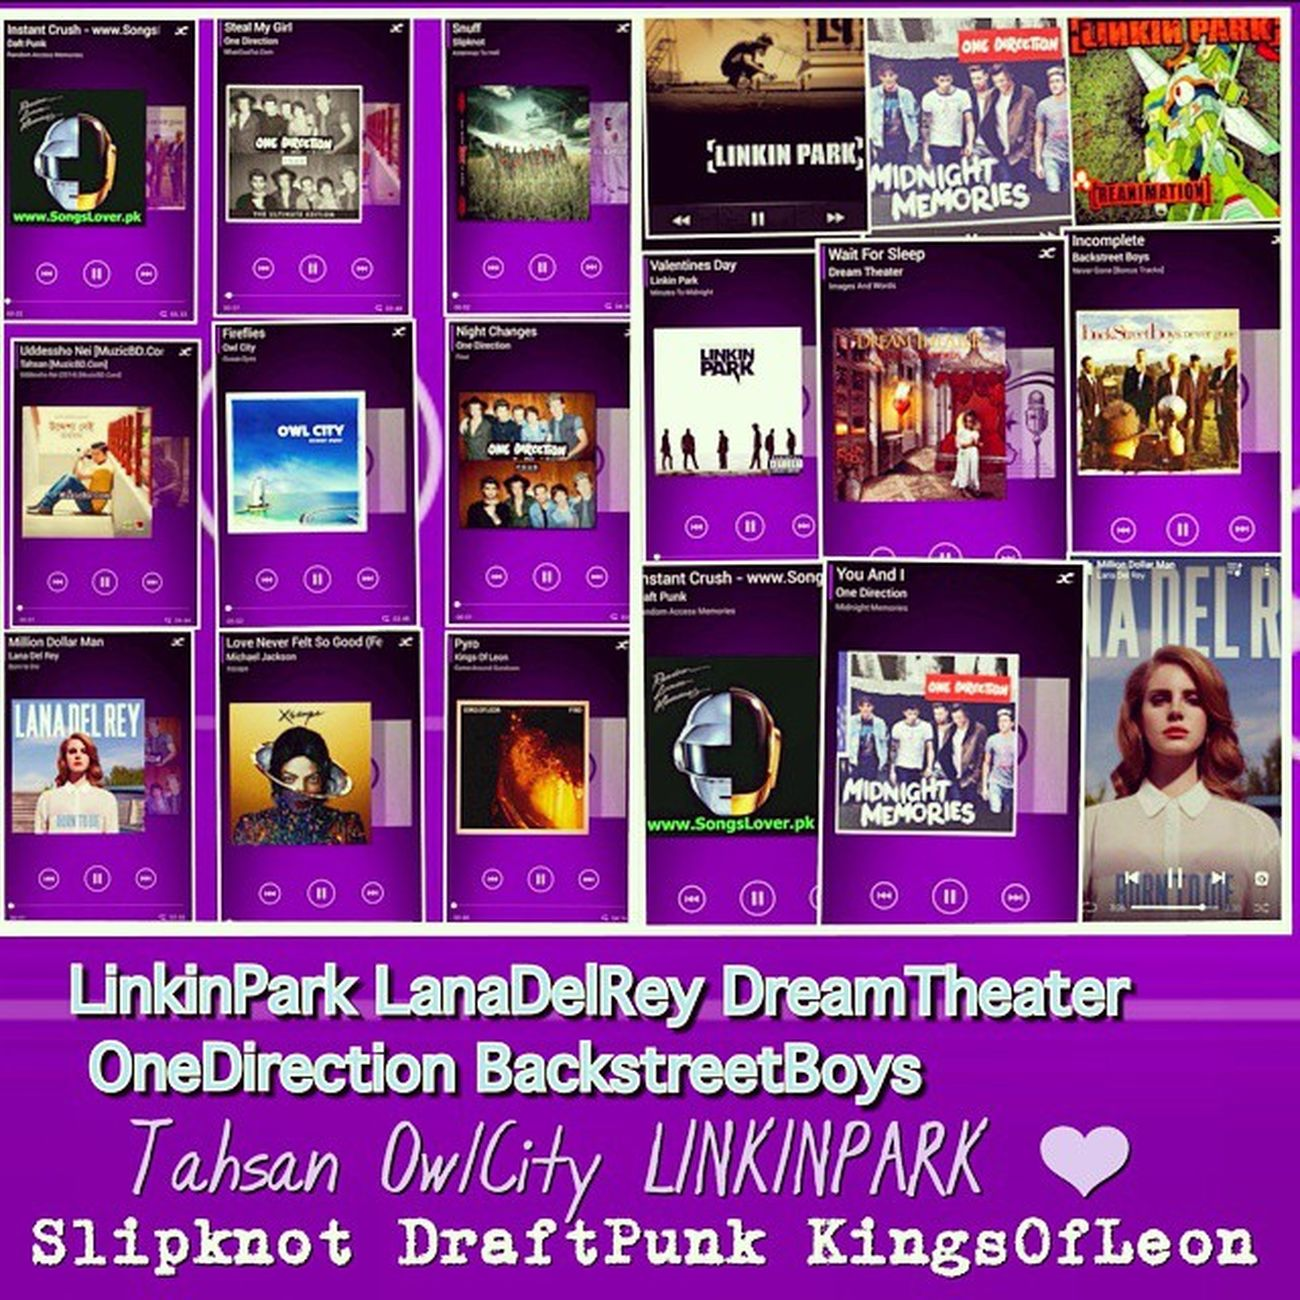 These are My Favorites now a day's ❤❤♬?♪?? Linkinpark Onedirection DraftPunk Dreamtheater OwlCity LanaDelRey BackStreetBoys KingsOfLeon BulletForMyValentine Slipknot LimpBizkit Bangladeshi- Tahsan Warfaze Artcell Alternation instamusic music is Life lplovermjay